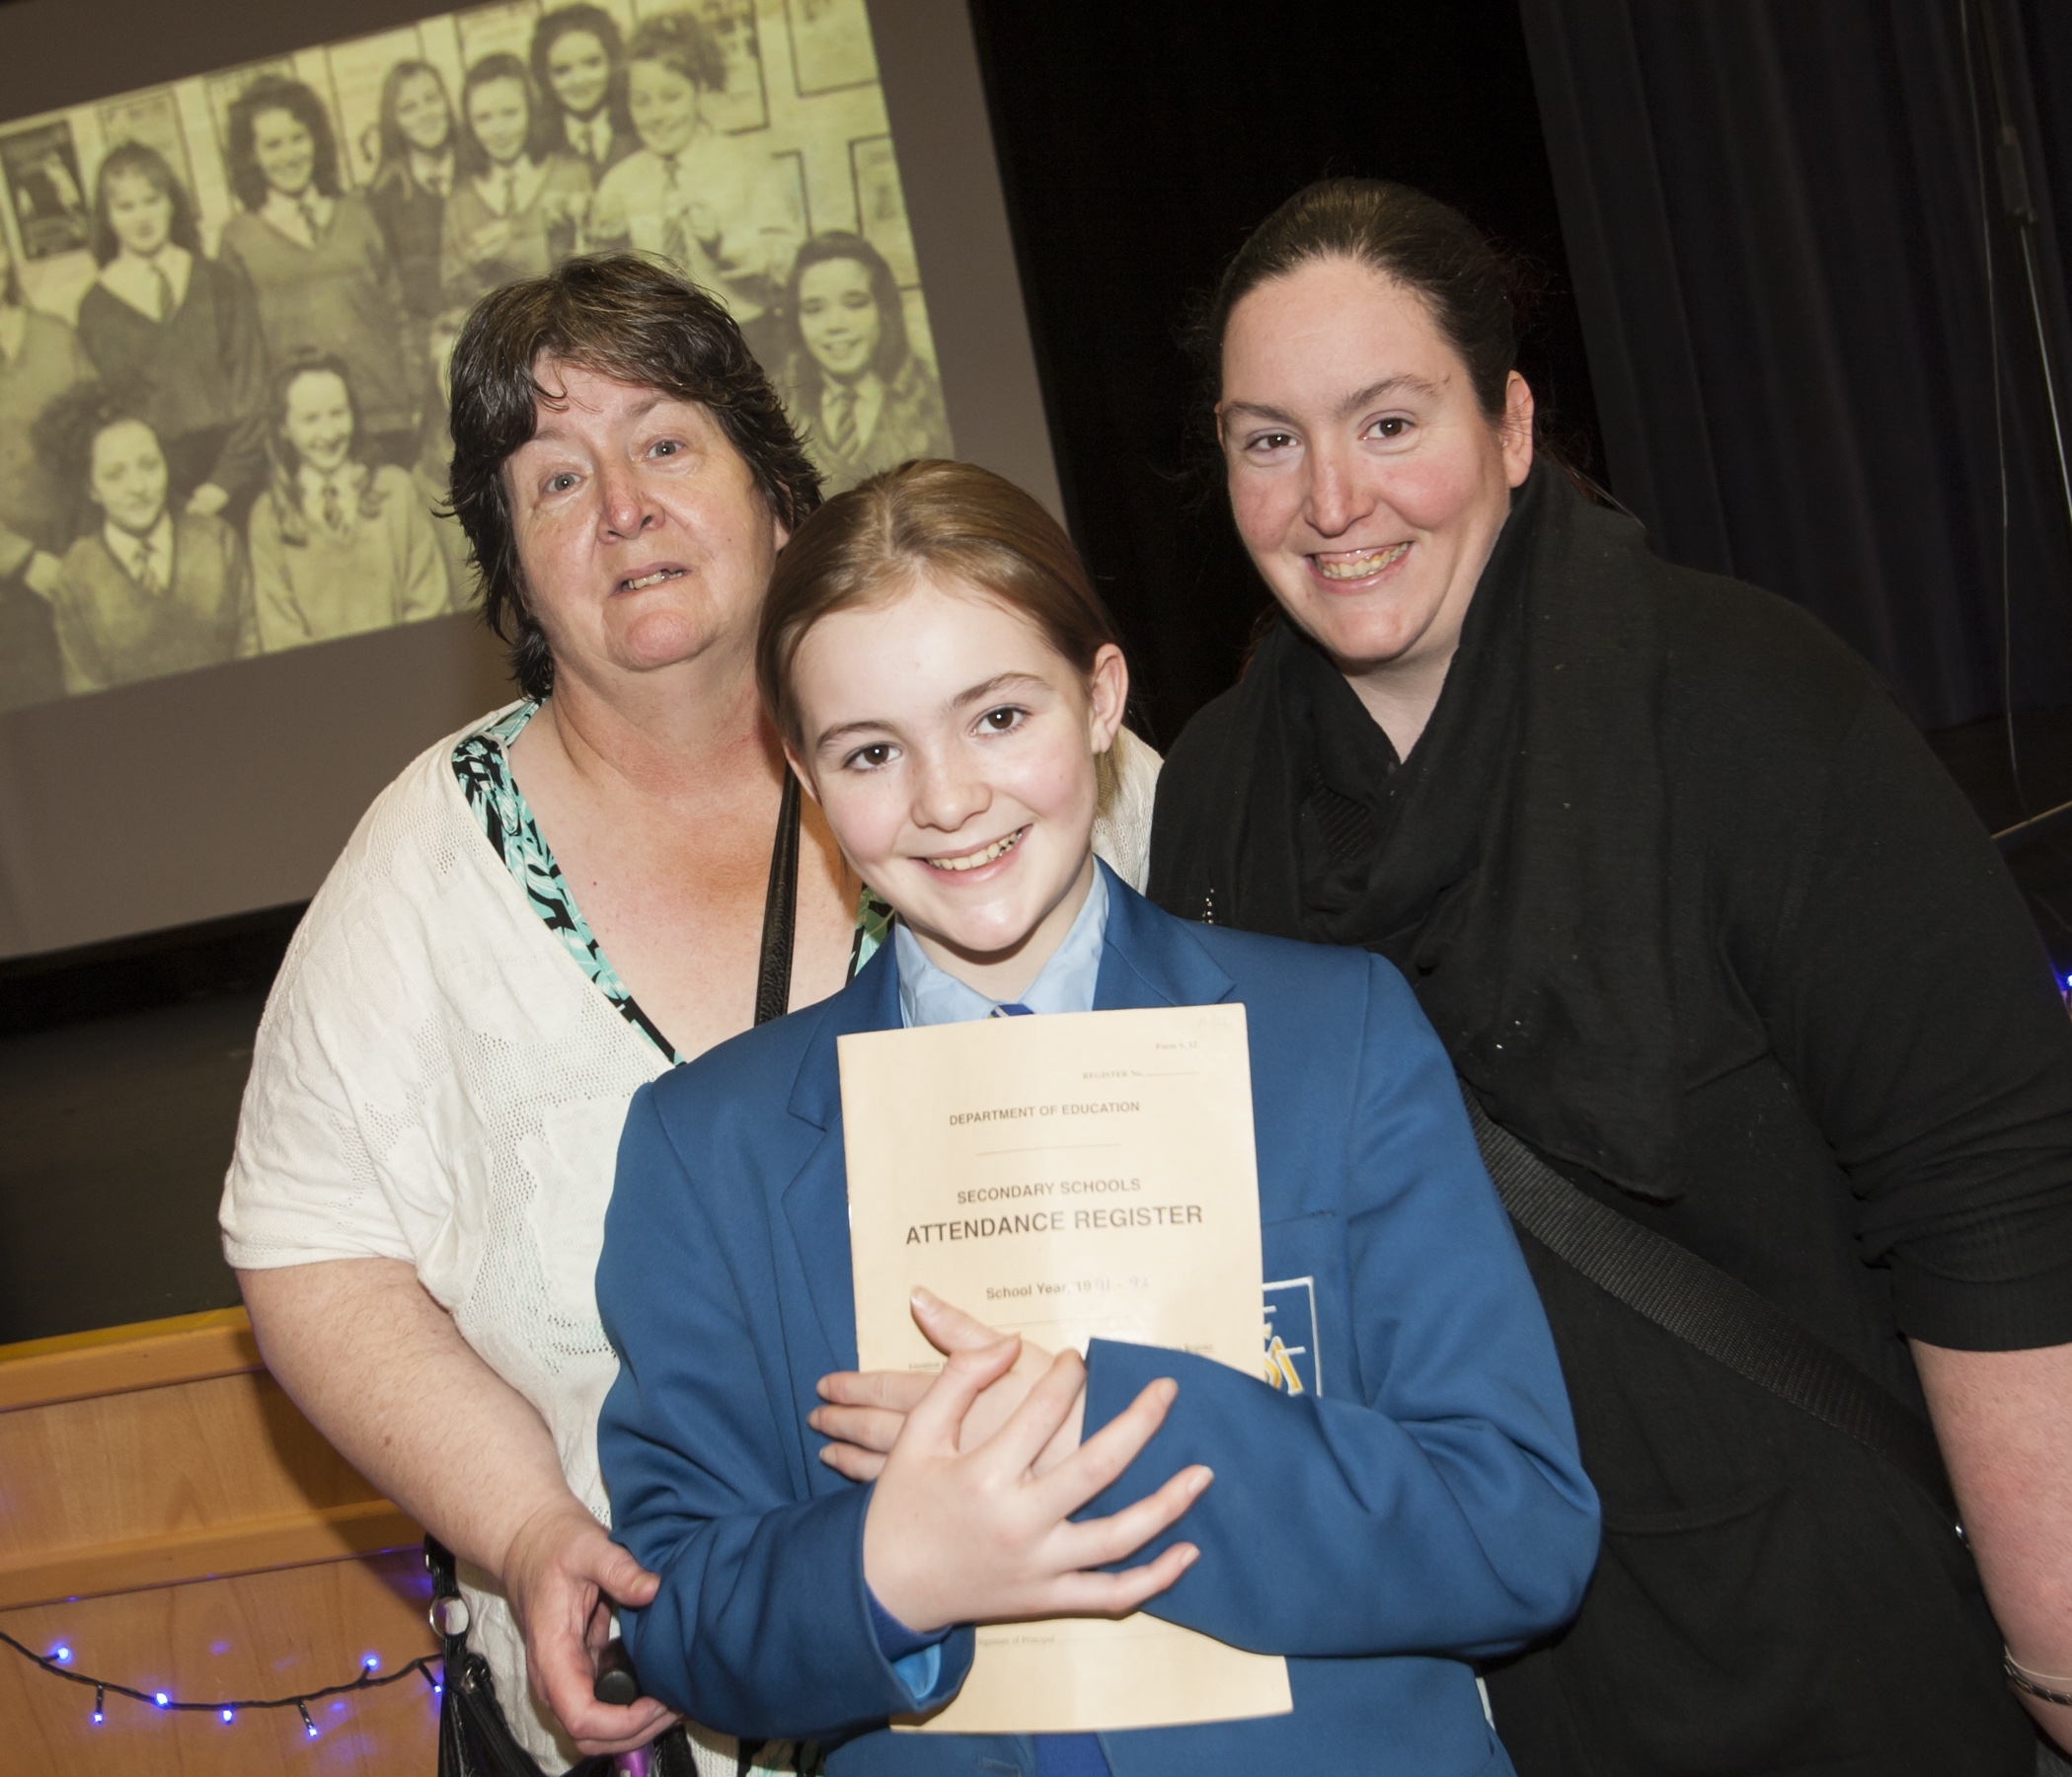 THREE GENERATIONS. . . .Pictured at the St. Mary's College 60th anniverary exhibition on Friday are Rosemary Lynch, Deborah Anne Lynch-Coyle and Roseanne Lynch-Coyle.